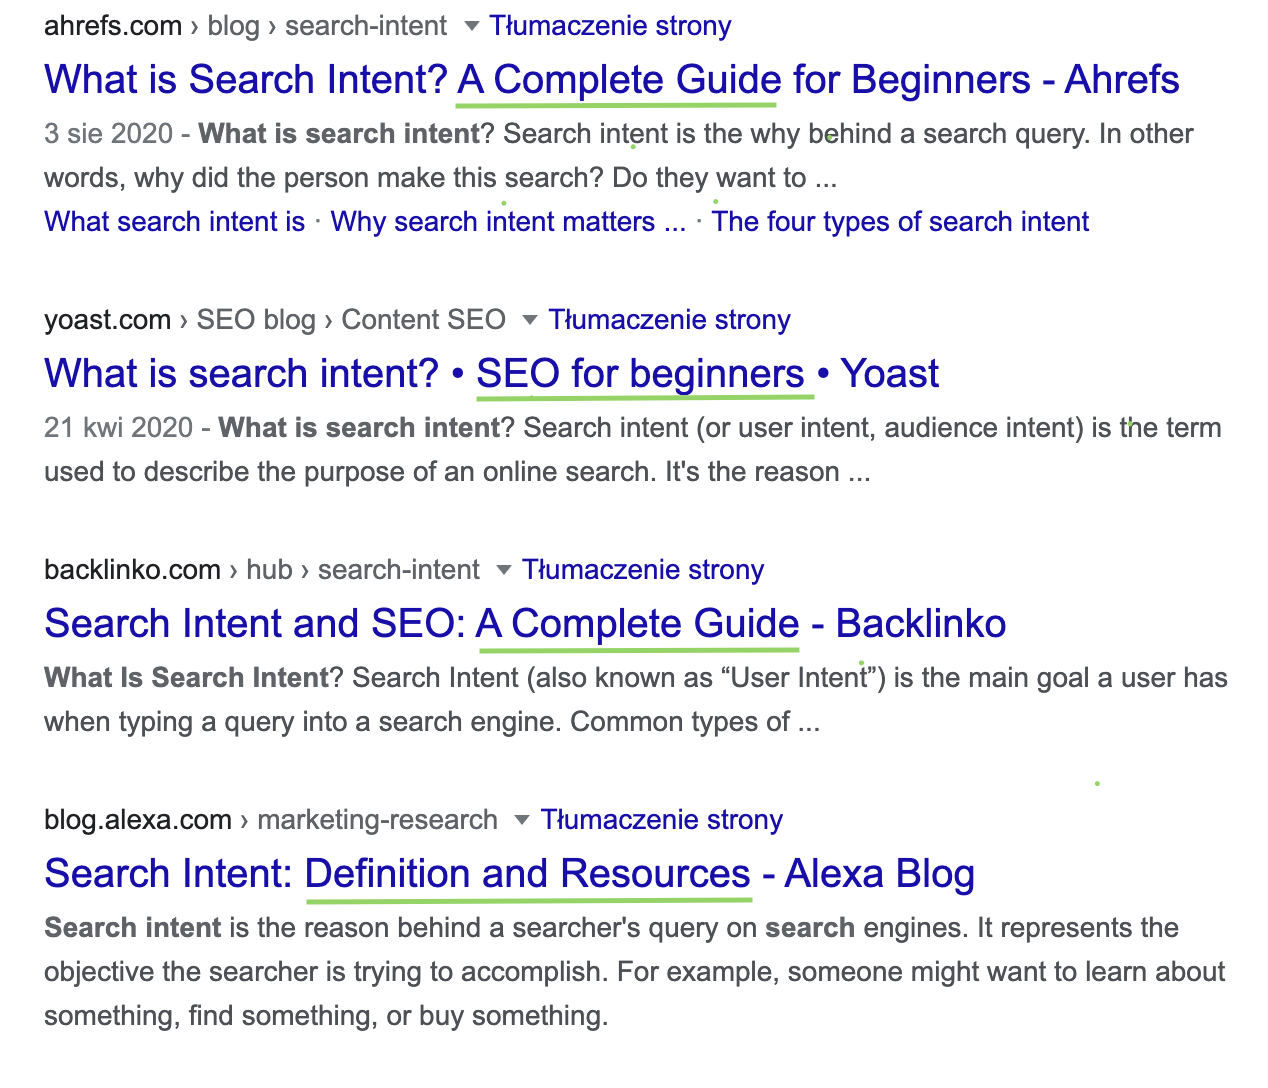 SERP for the what is search intent query